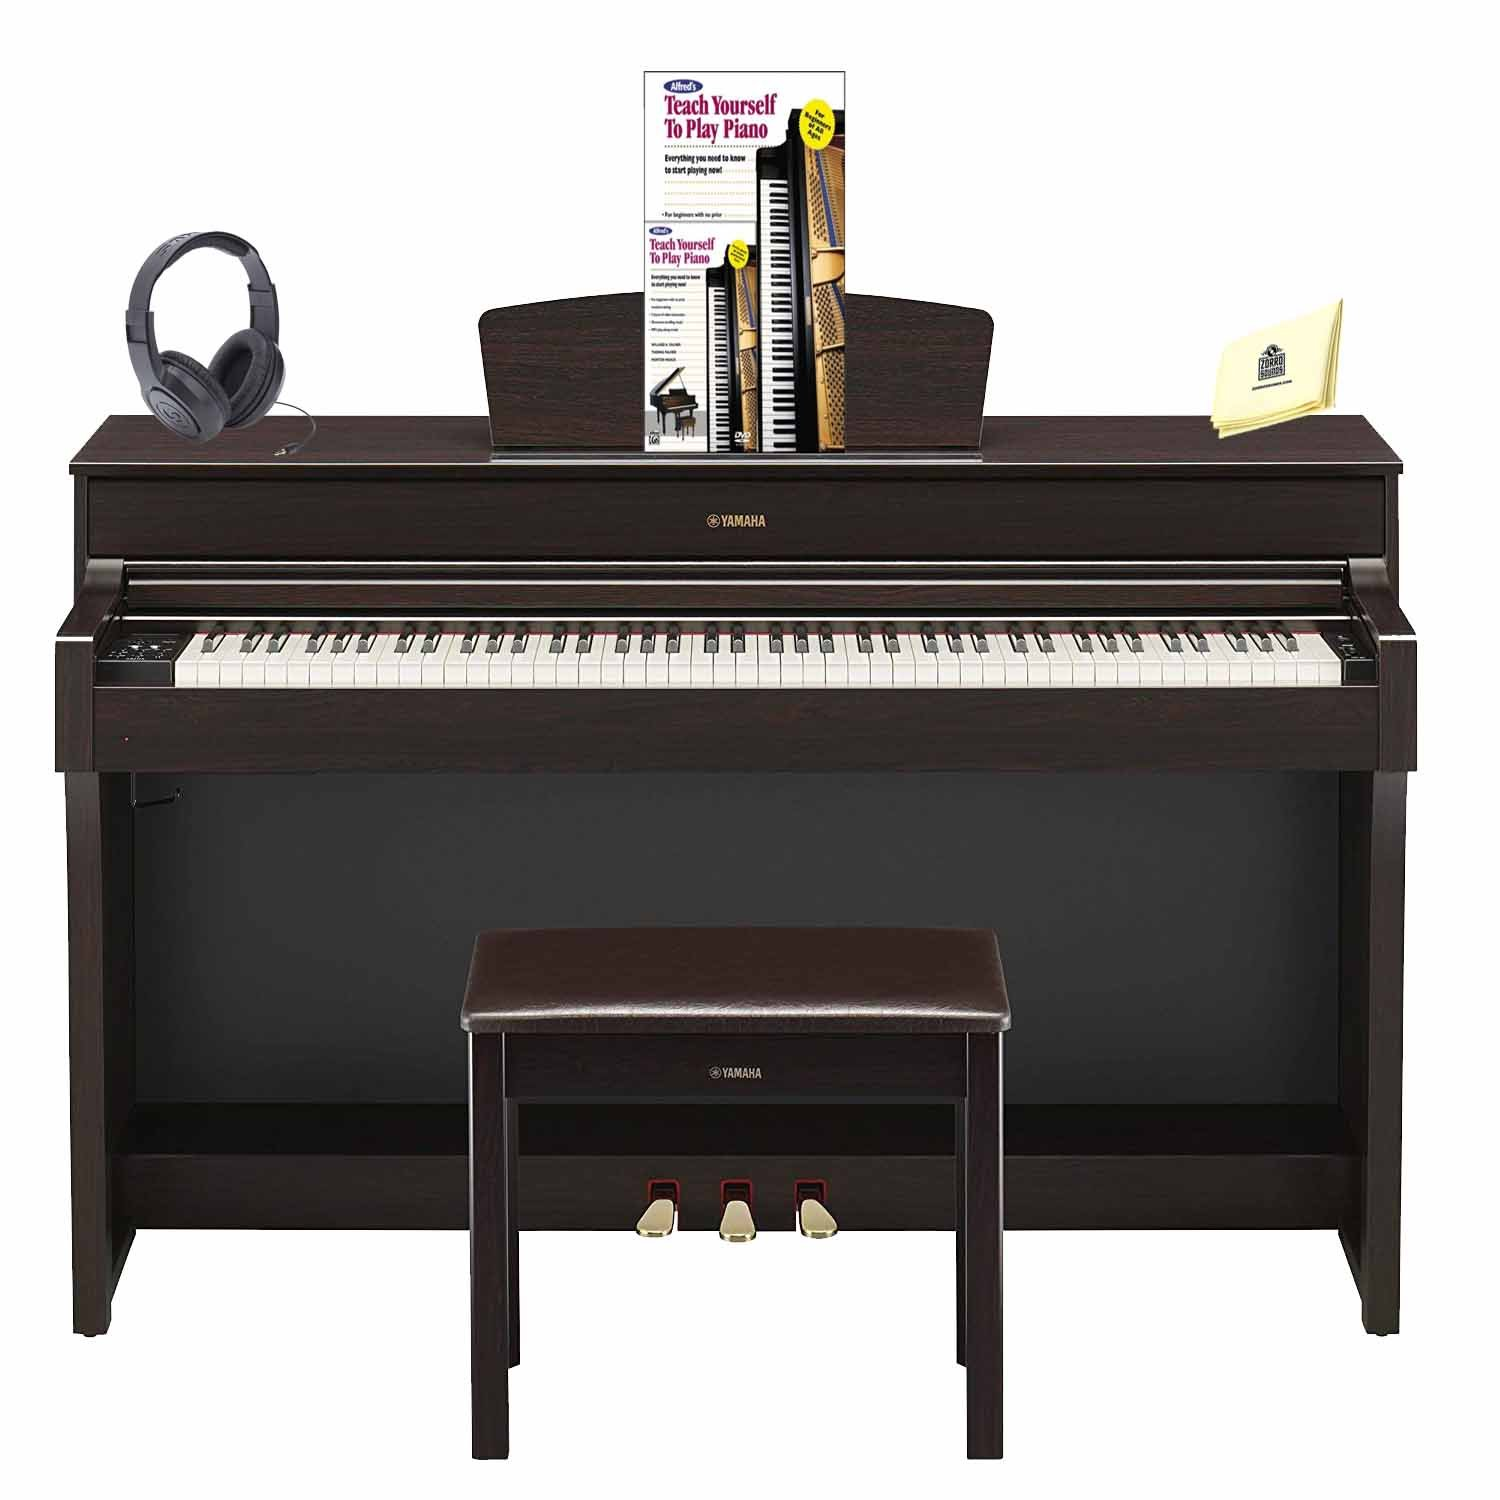 Yamaha YDP-184 Arius 88-Key Digital Piano with GH3 Graded Hammer Keyboard & CFX Concert Grand Piano Sample (Included Music Book, Bench & AC Power Adapter) Piano (Book & DVD) Headphone and Piano Cloth by Yamaha